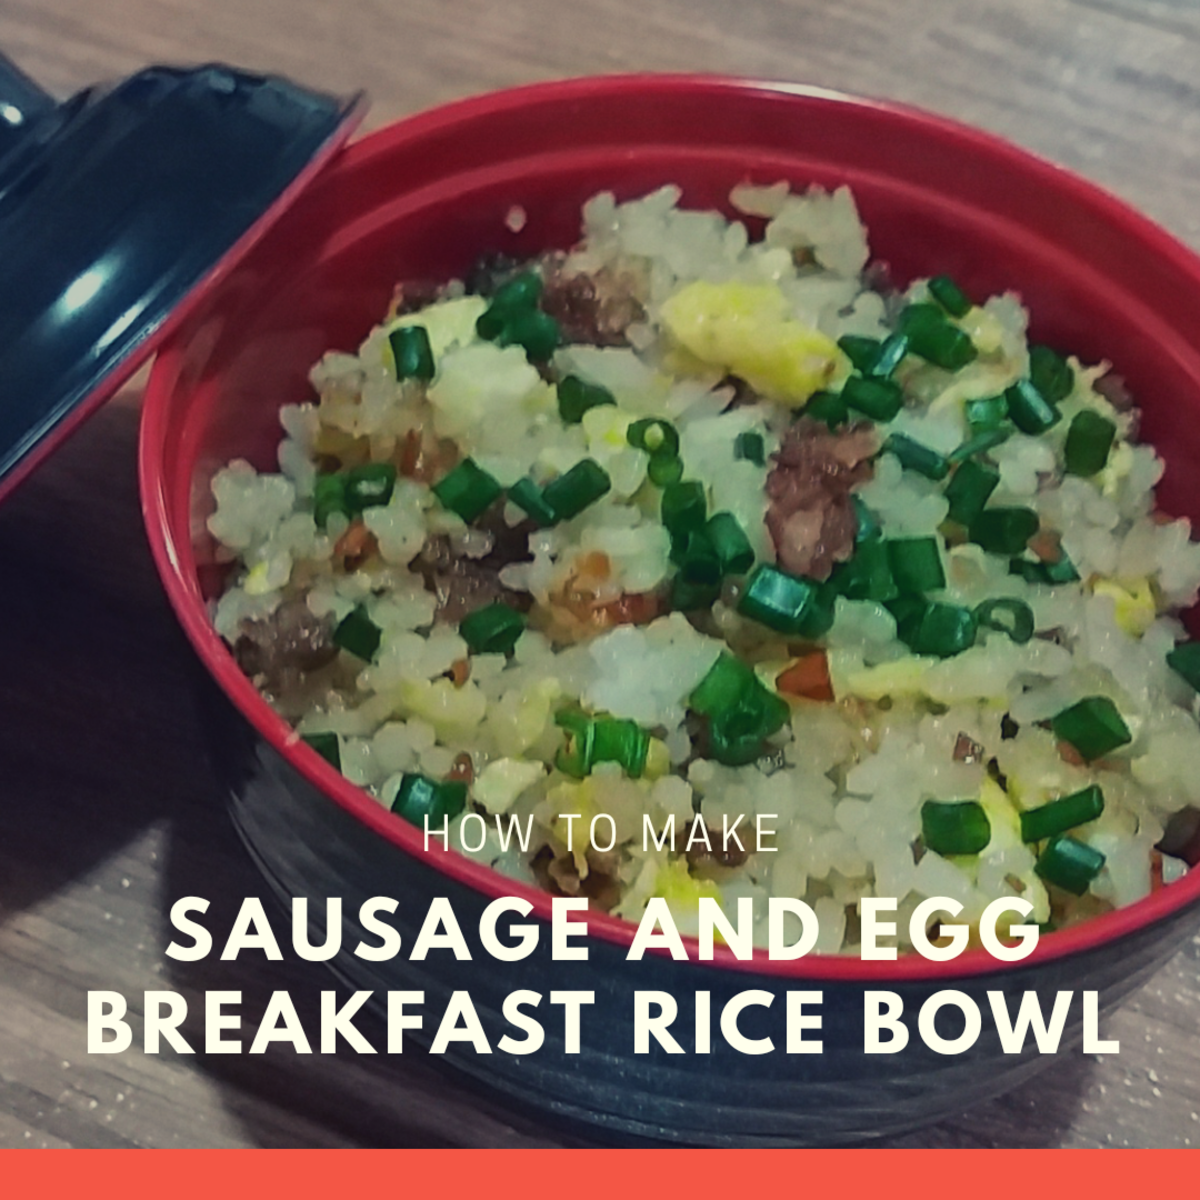 how to make sausage and egg breakfast rice bowl